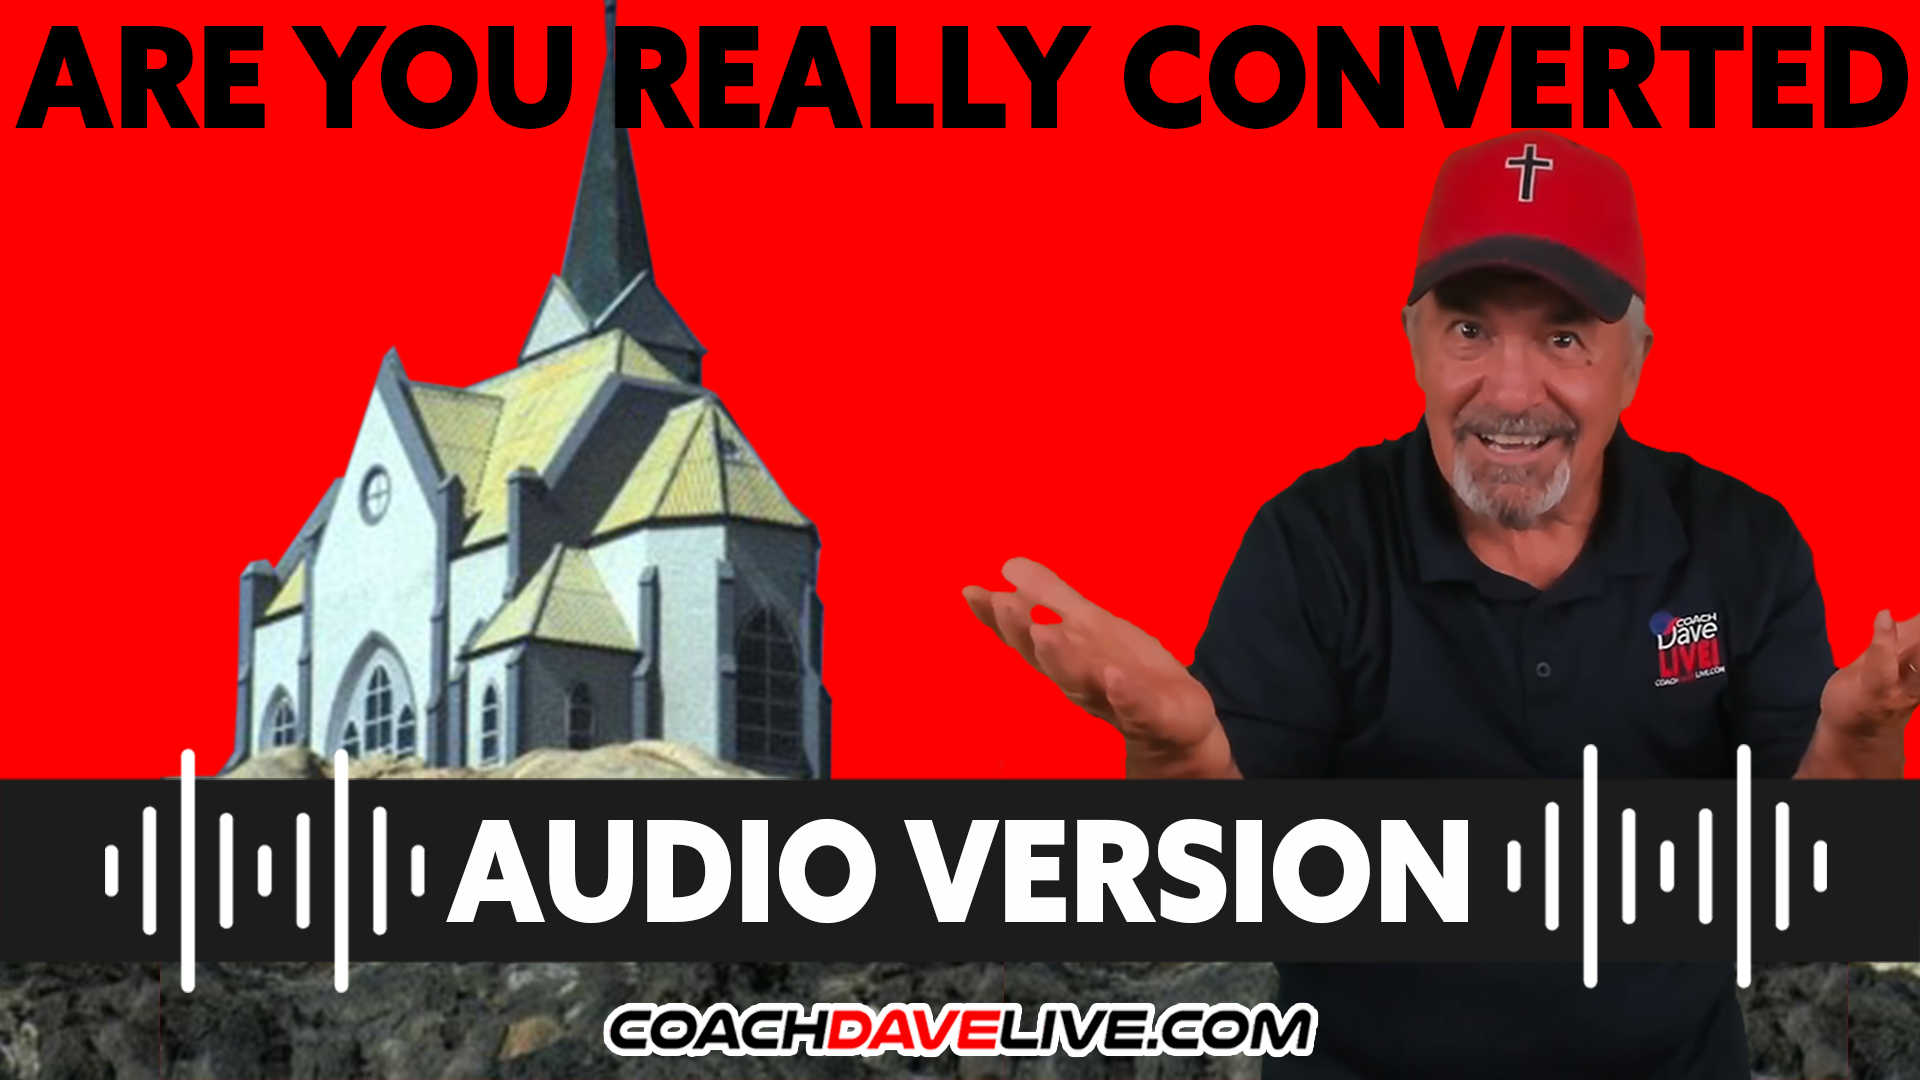 Coach Dave LIVE | 9-20-2021 | ARE YOU REALLY CONVERTED? - AUDIO ONLY